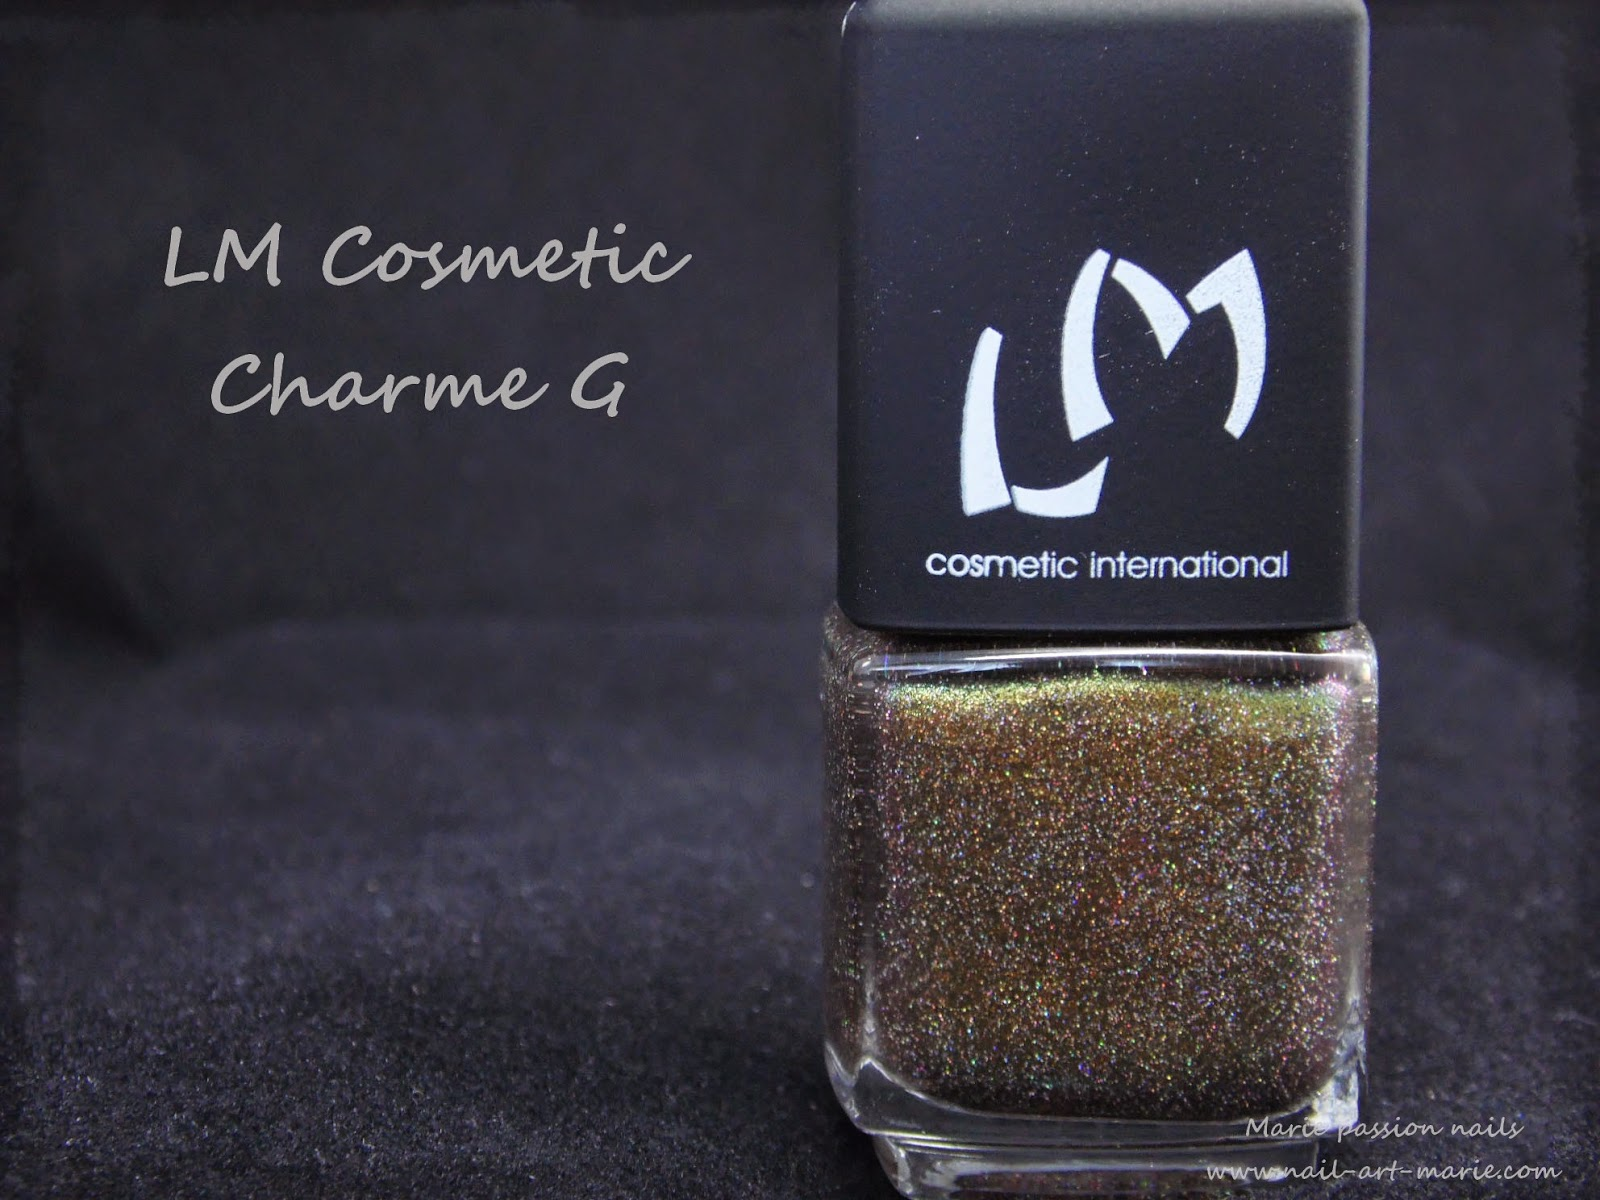 LM Cosmetic Charme (G)1